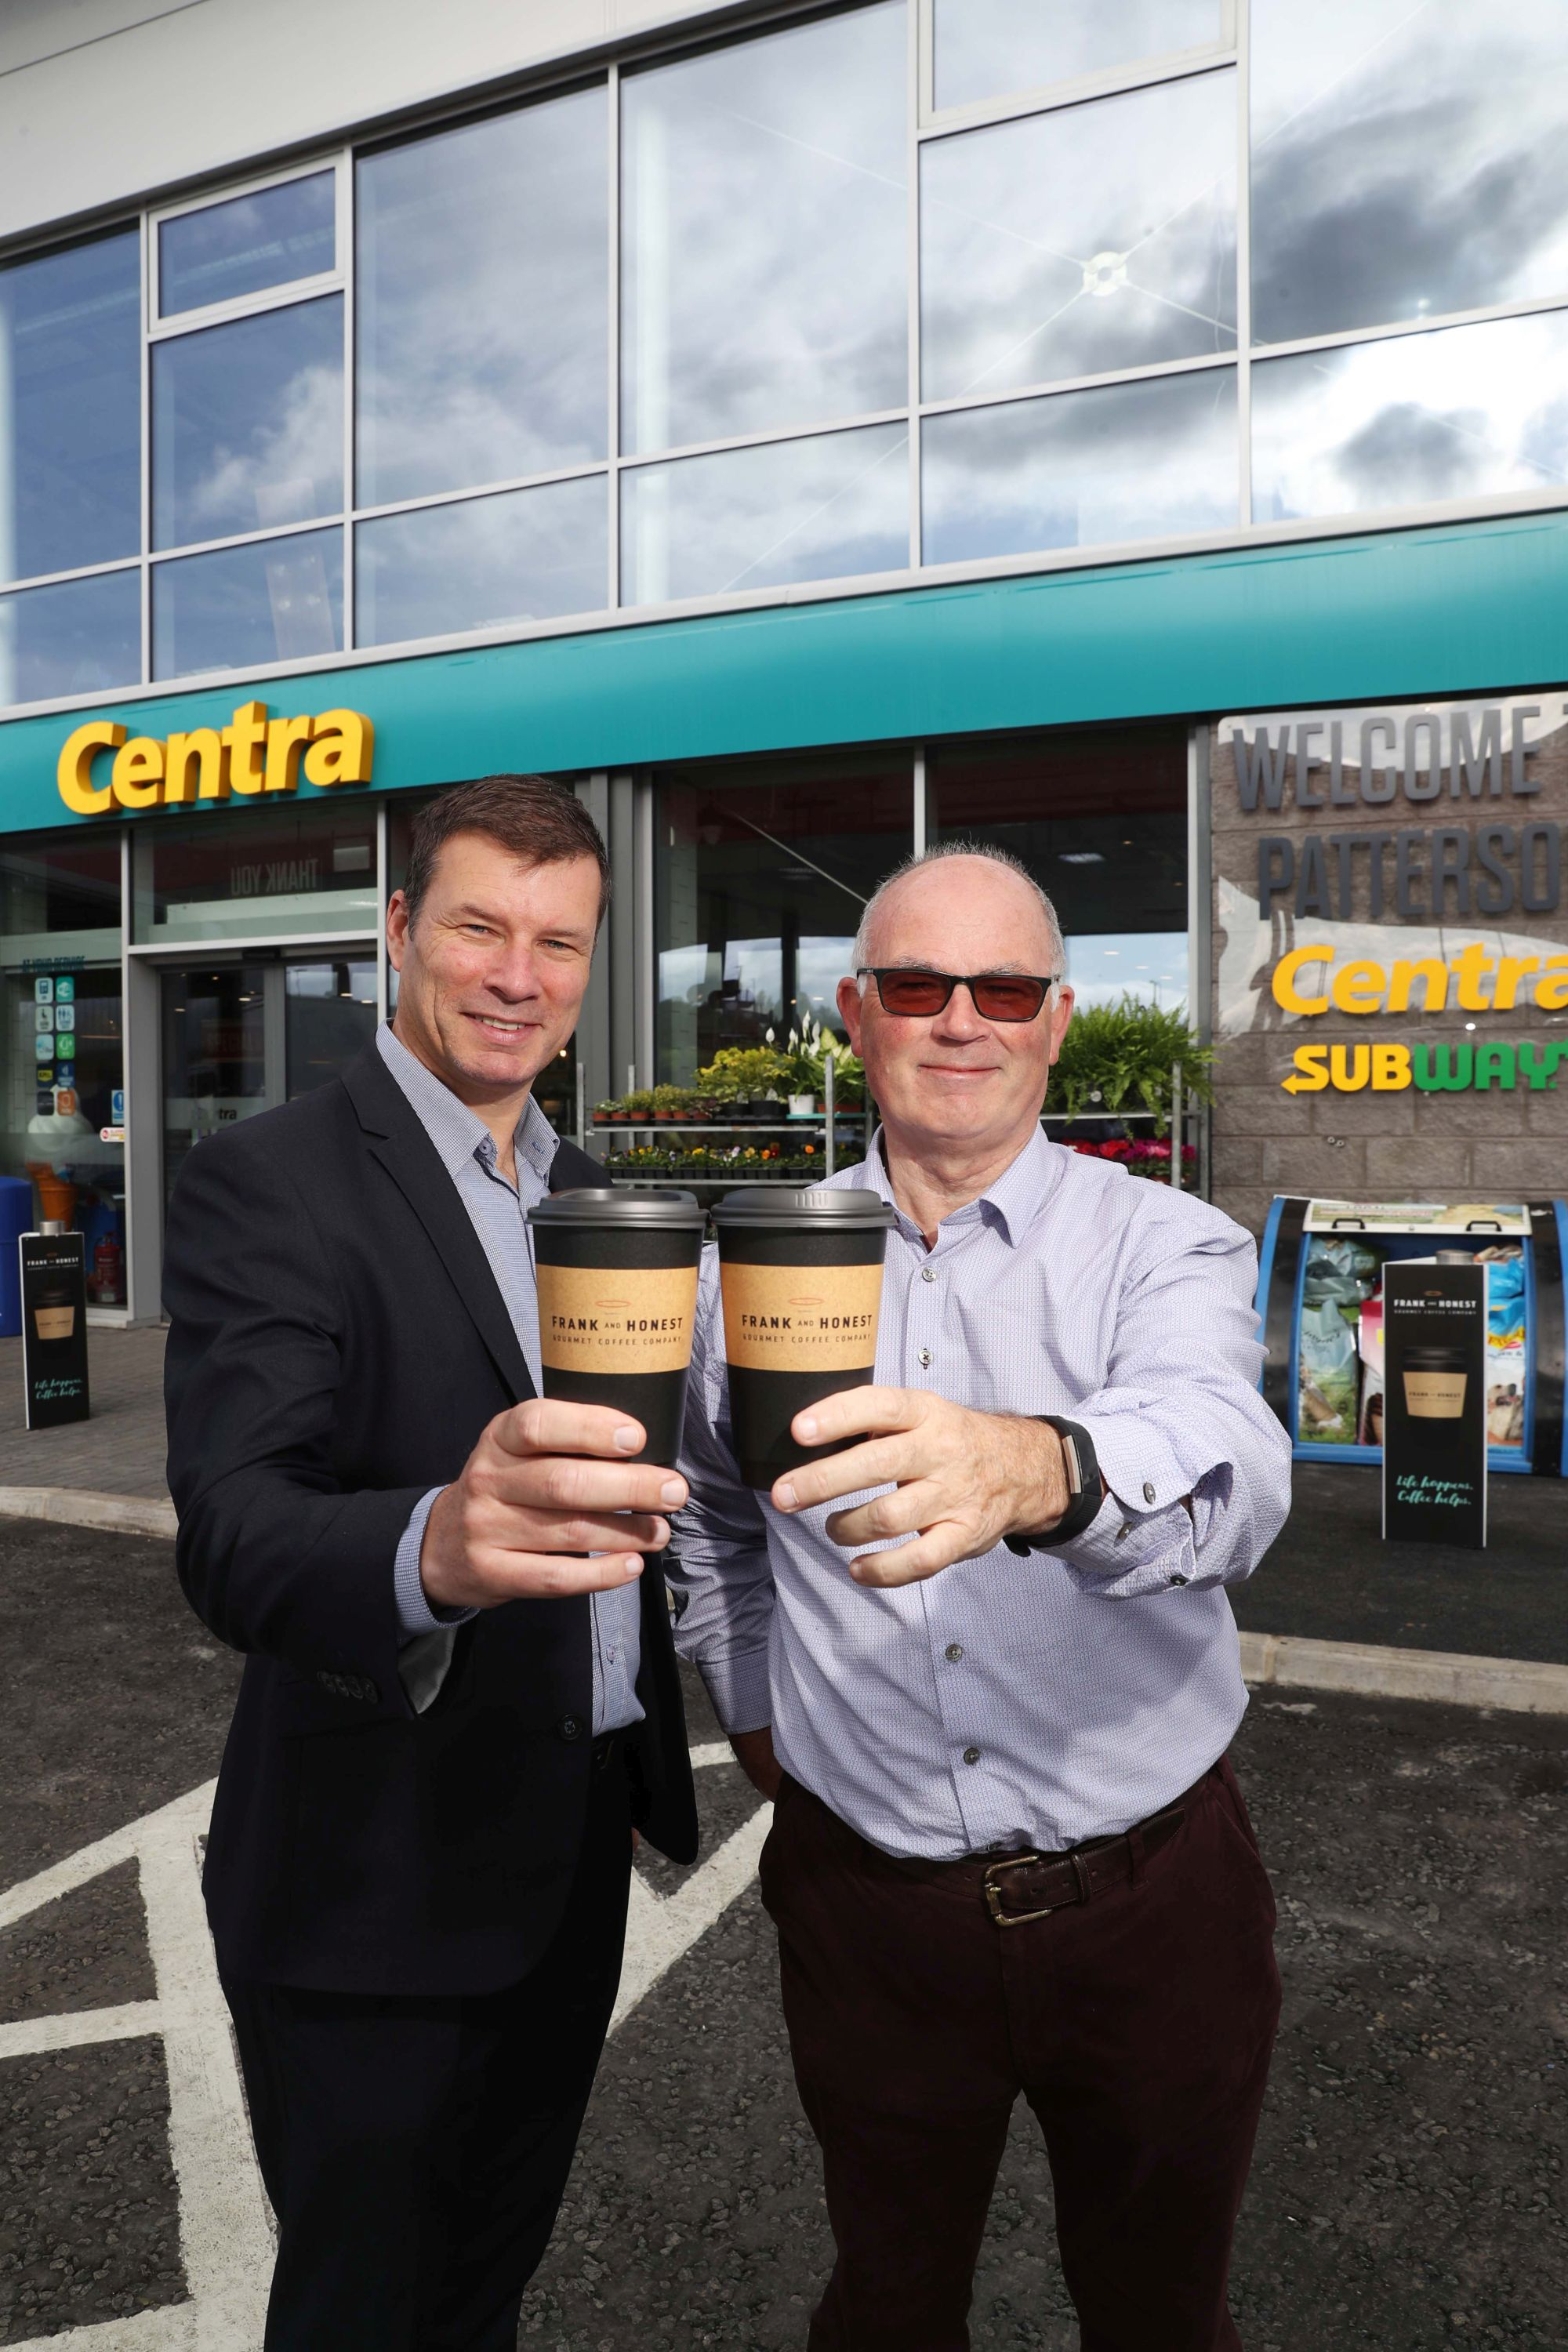 Centra Dungannon receives £2.2m investment creating 50 new jobs